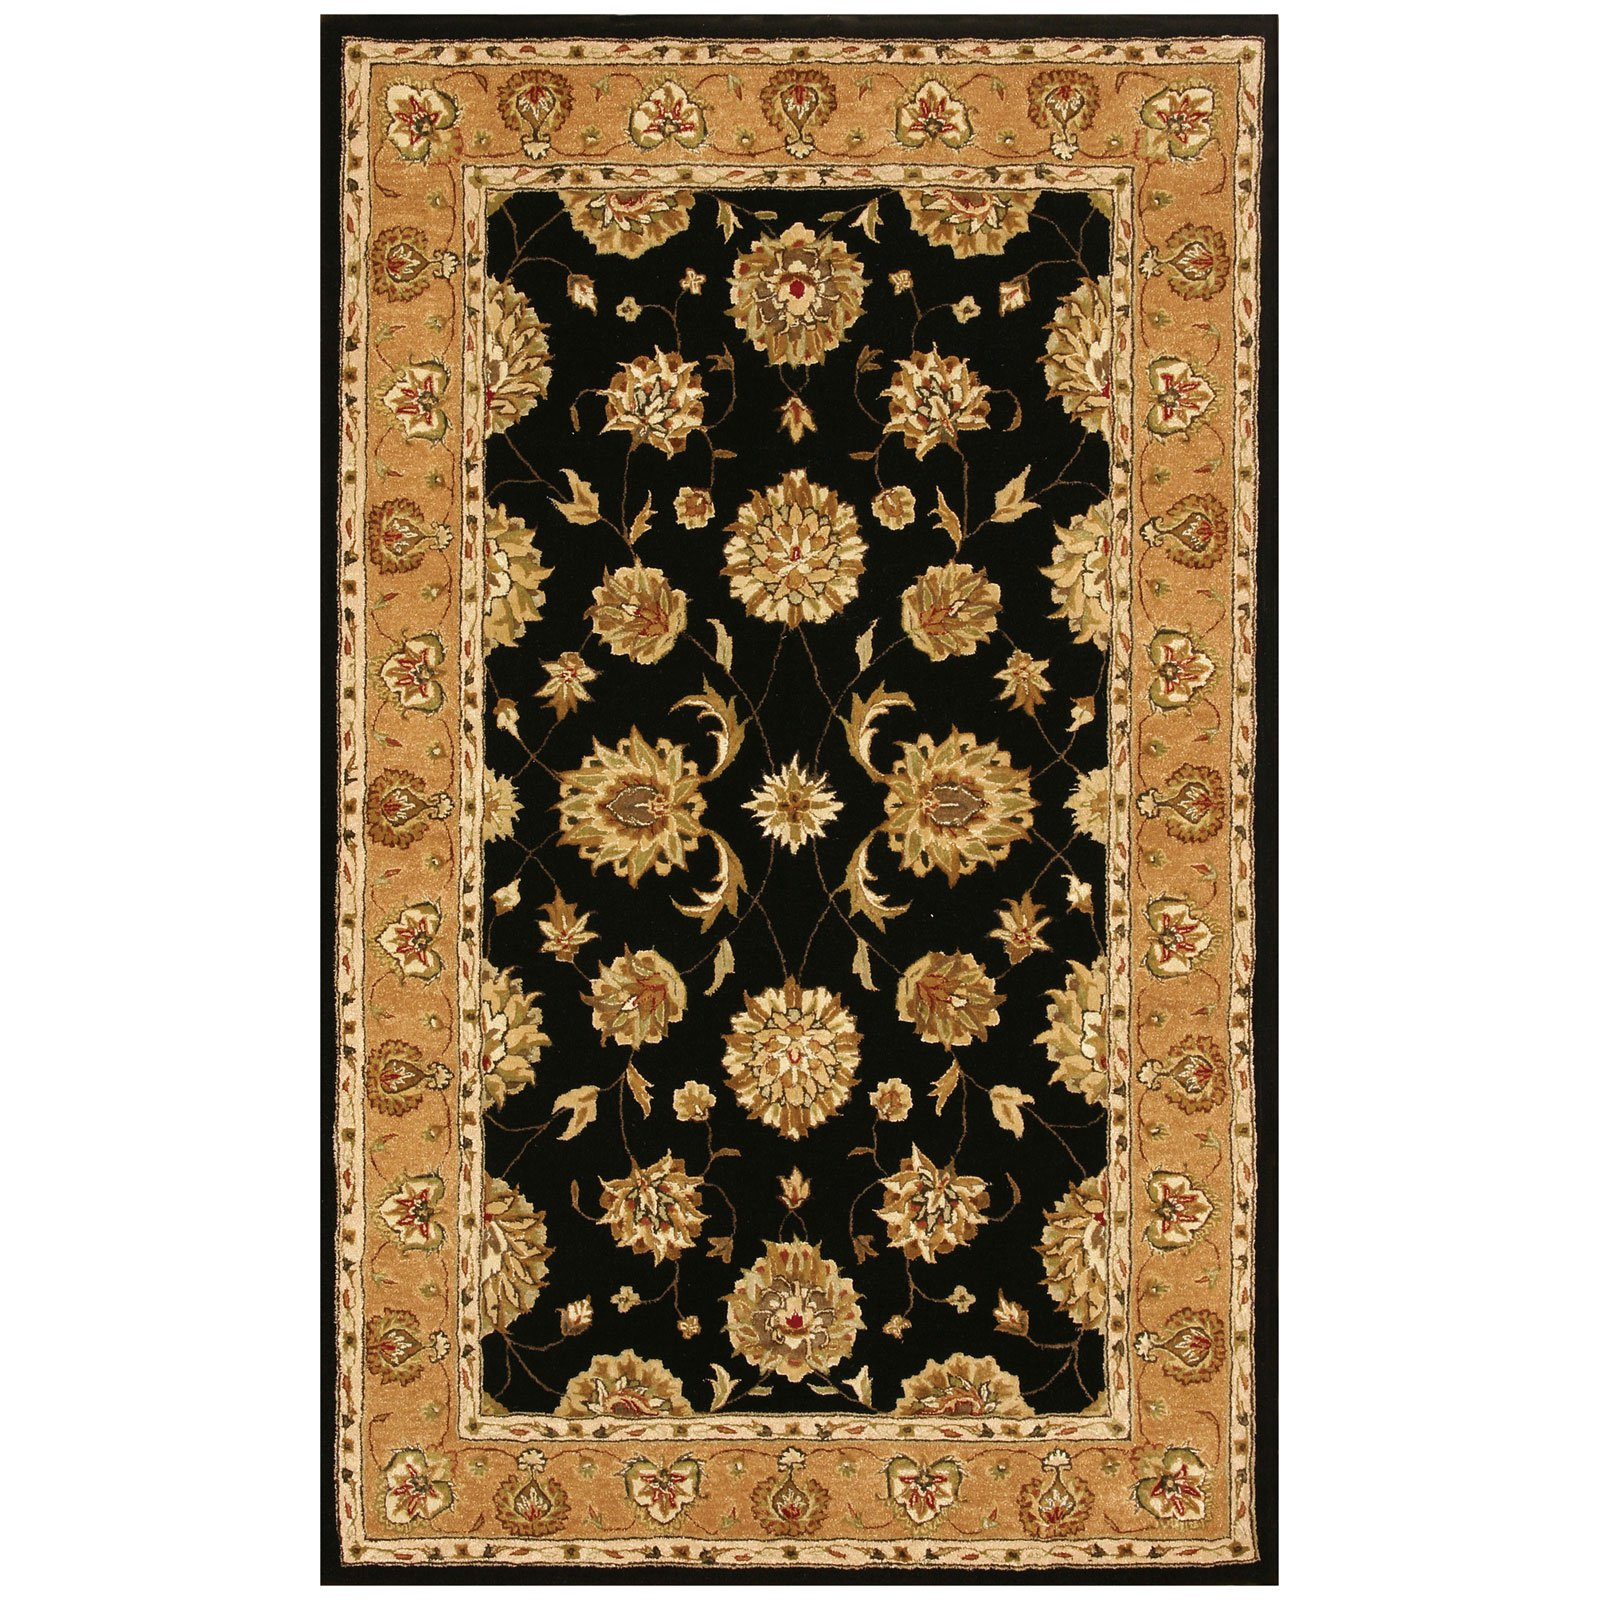 Dynamic Rugs Jewel 70230 Pom Persian Rug - Black/Camel